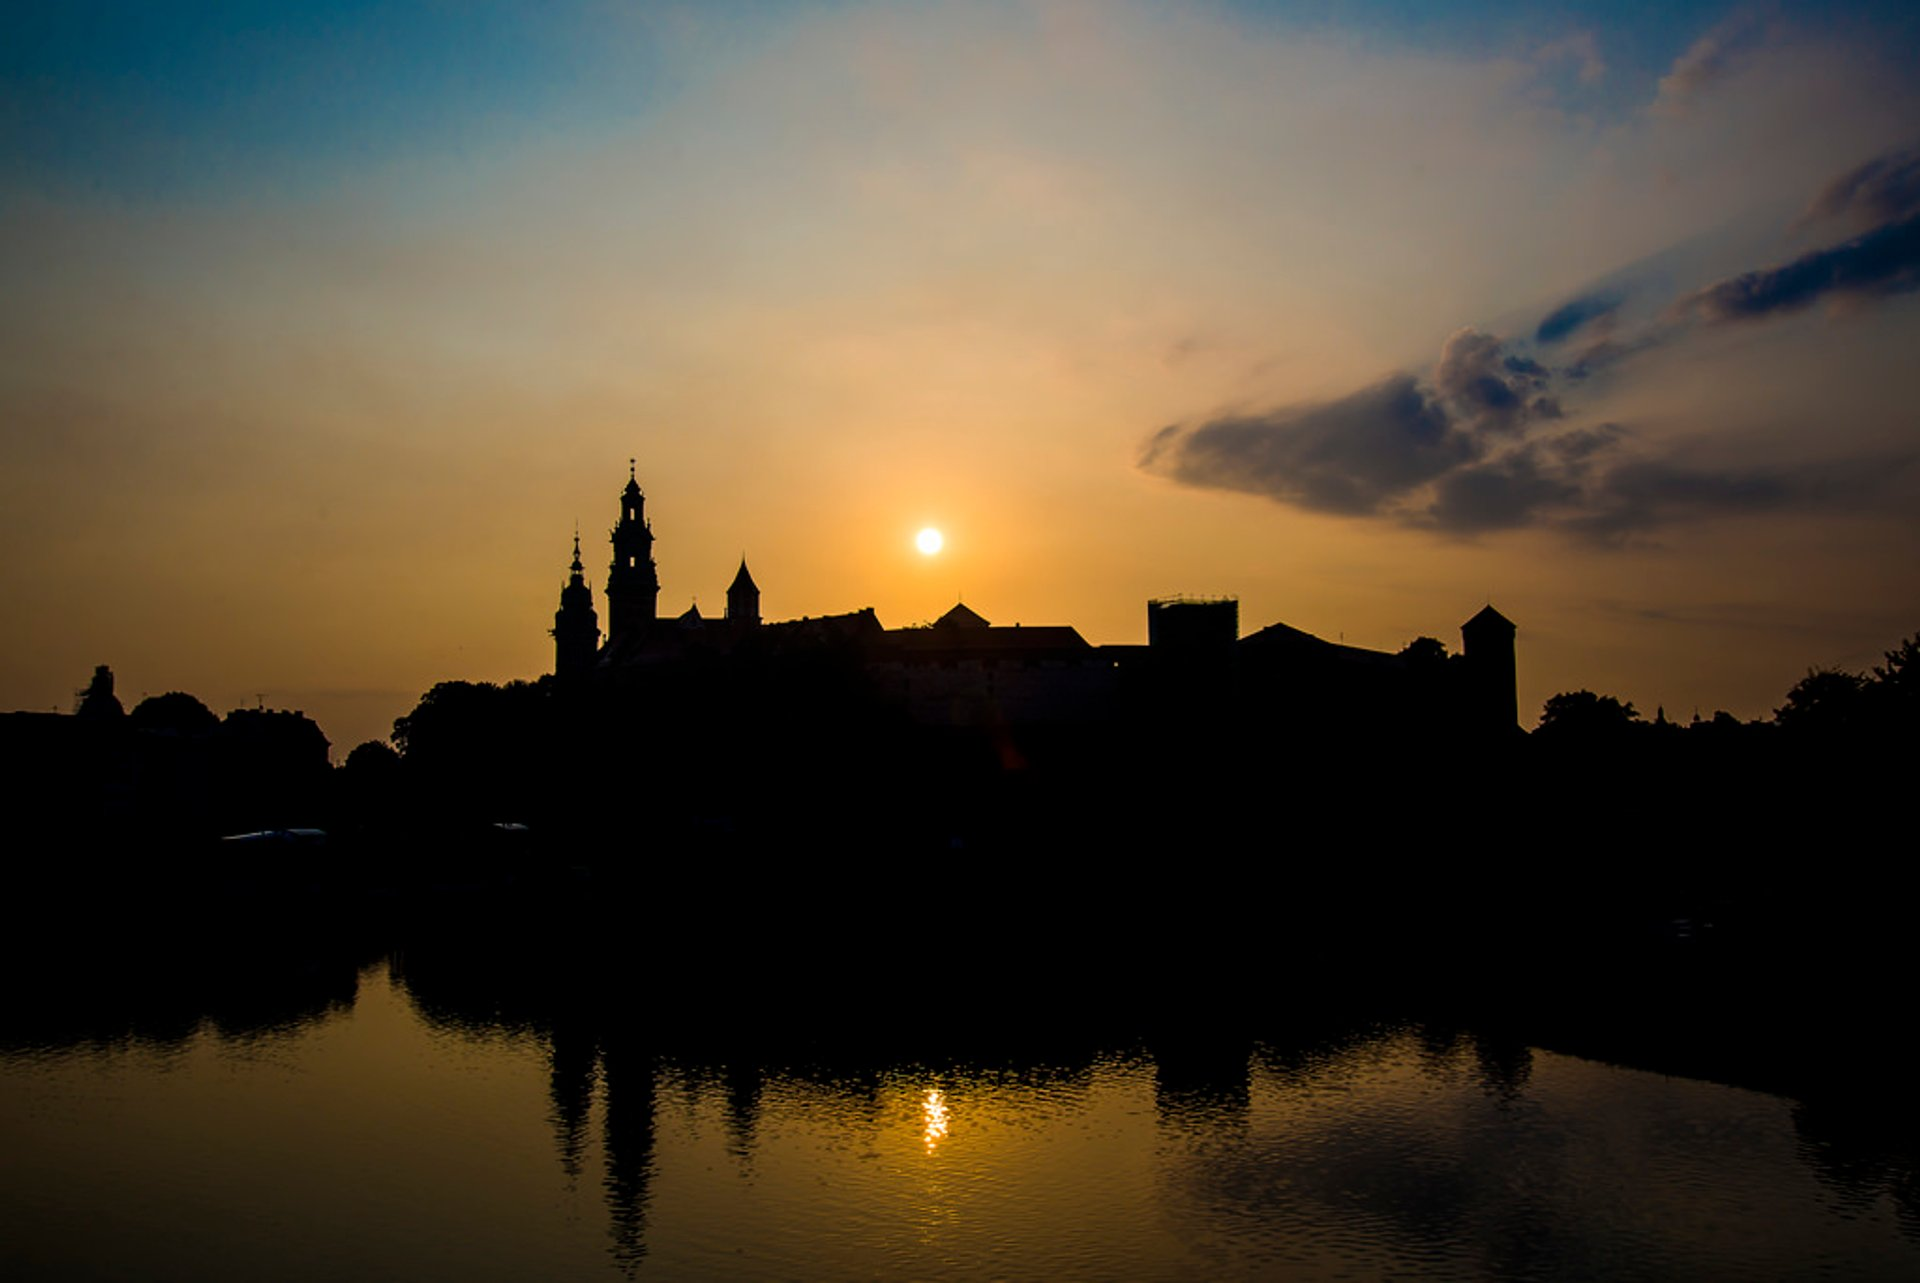 Sunrise near Wawel, Krakow